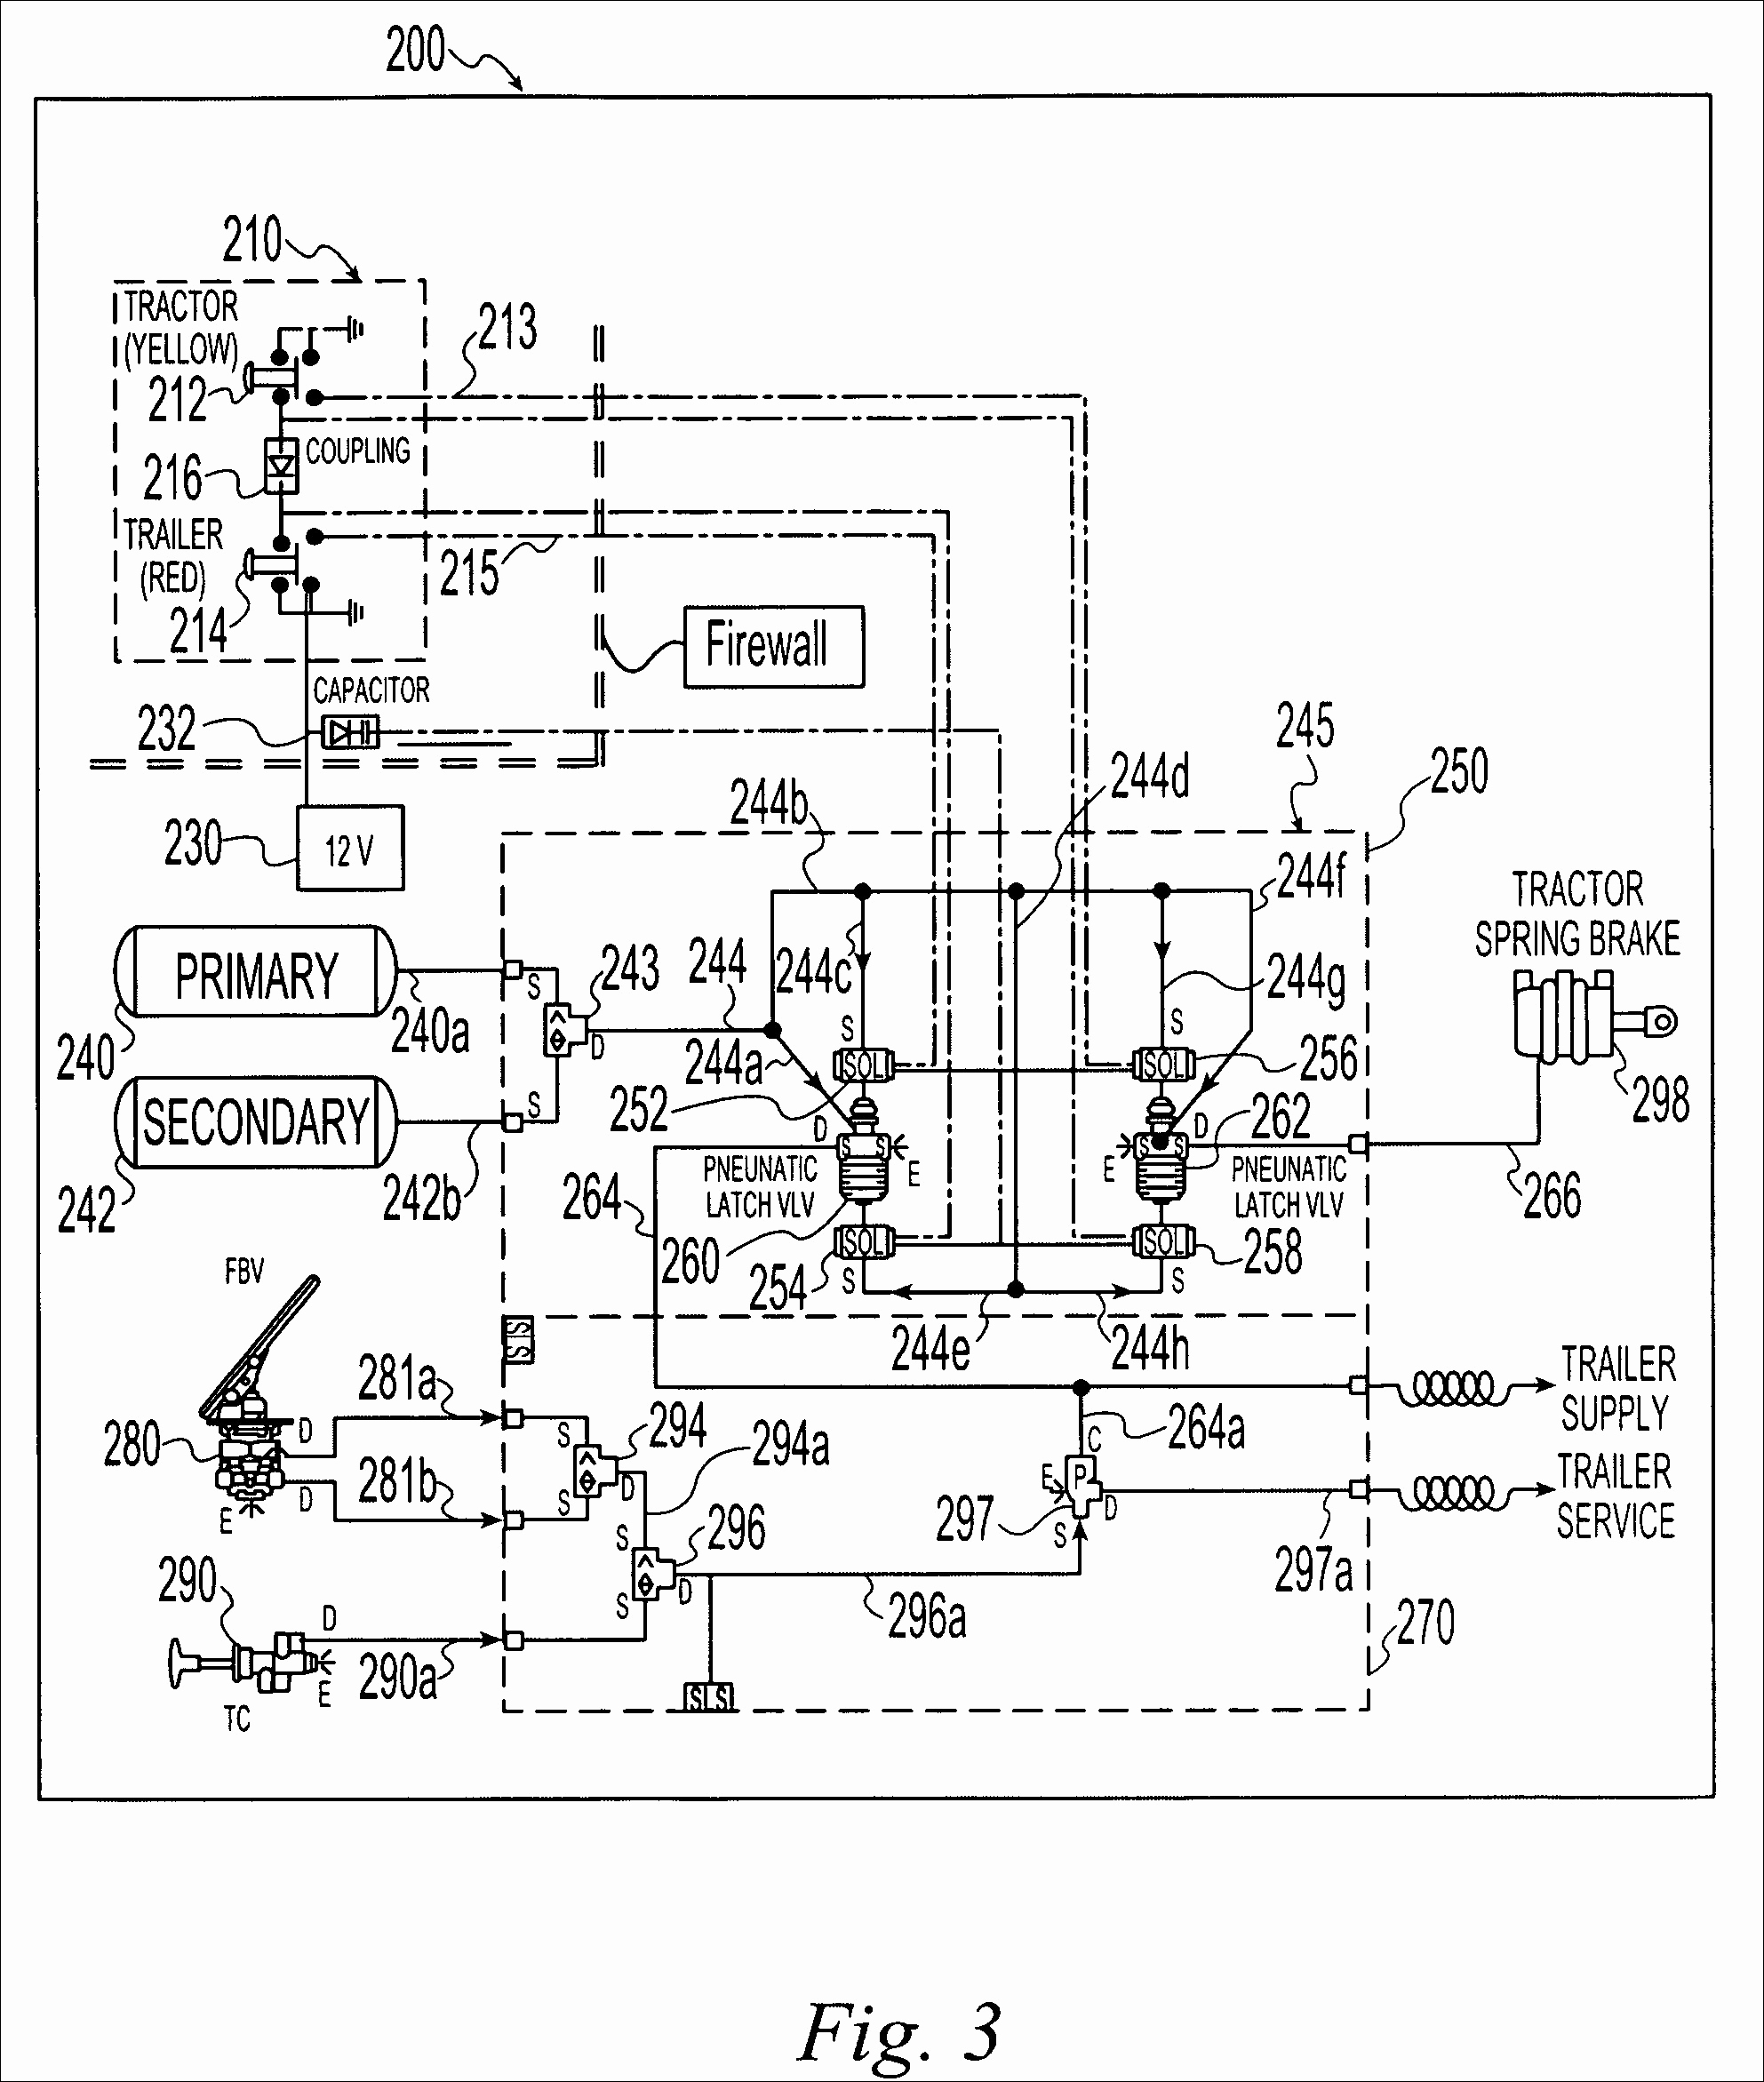 Wiring Diagram 94 Chevy Pickup from wholefoodsonabudget.com